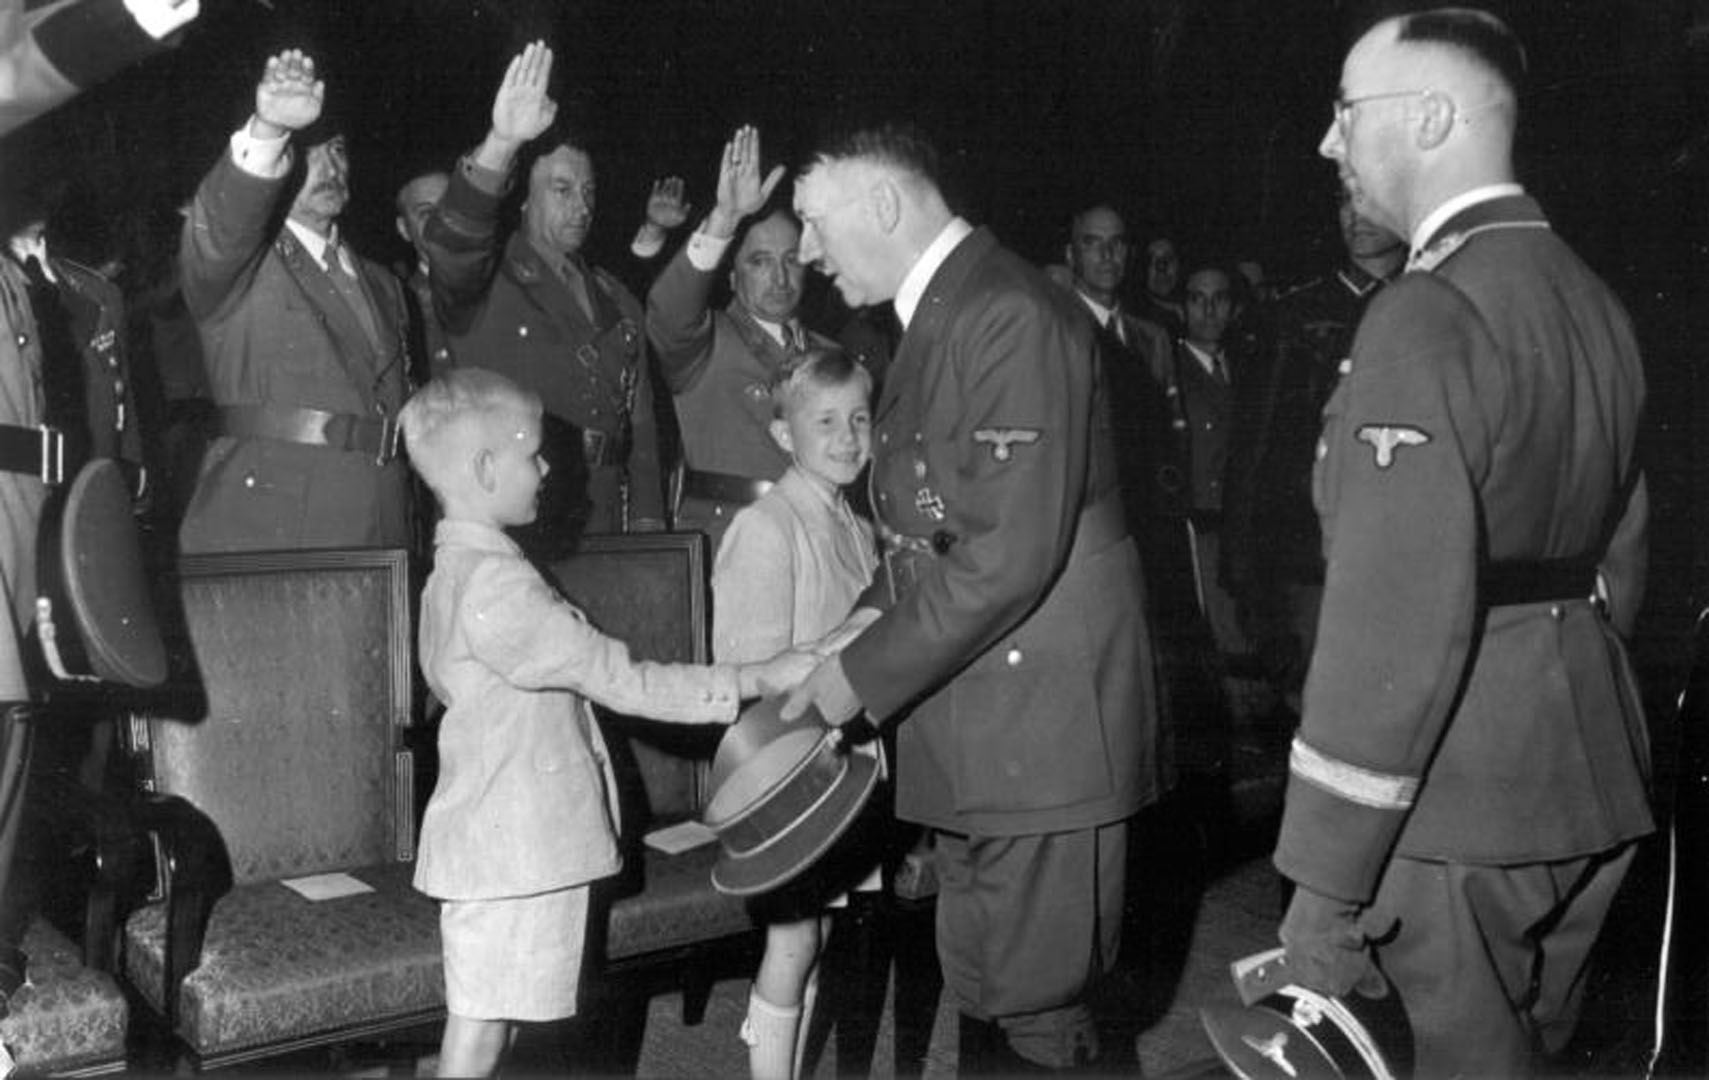 an overview of the work of adolf hitler in germany Speech to reichstag in berlin may 1941 after fifteen years of work i have achieved, as a common german  i am fighting for the work of the lord adolf hitler.